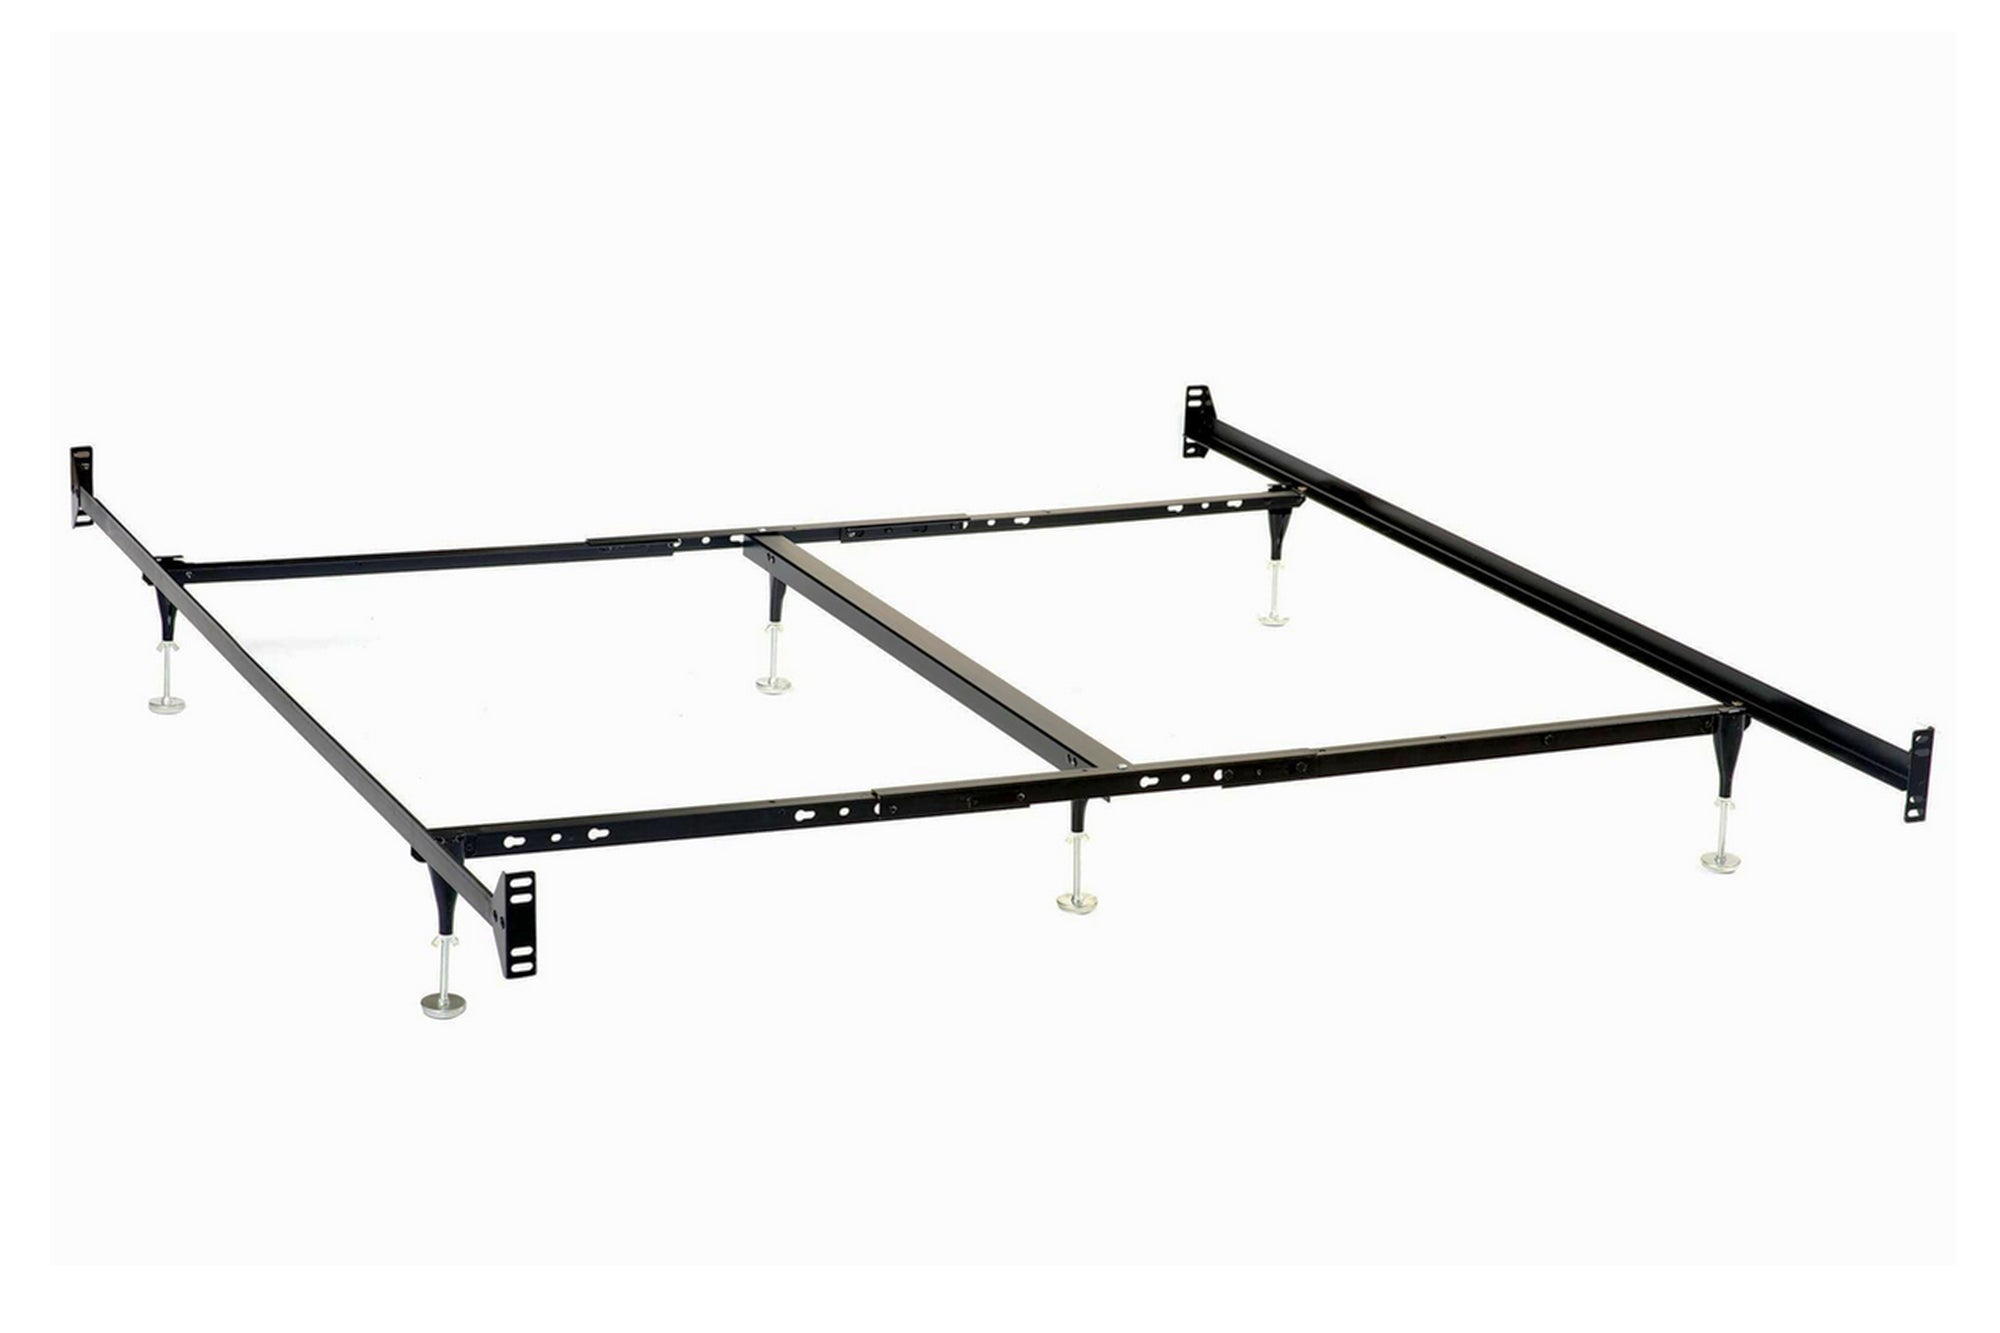 Bolt-On Bed Frame for California King Headboards and Footboards Model # 9602KW